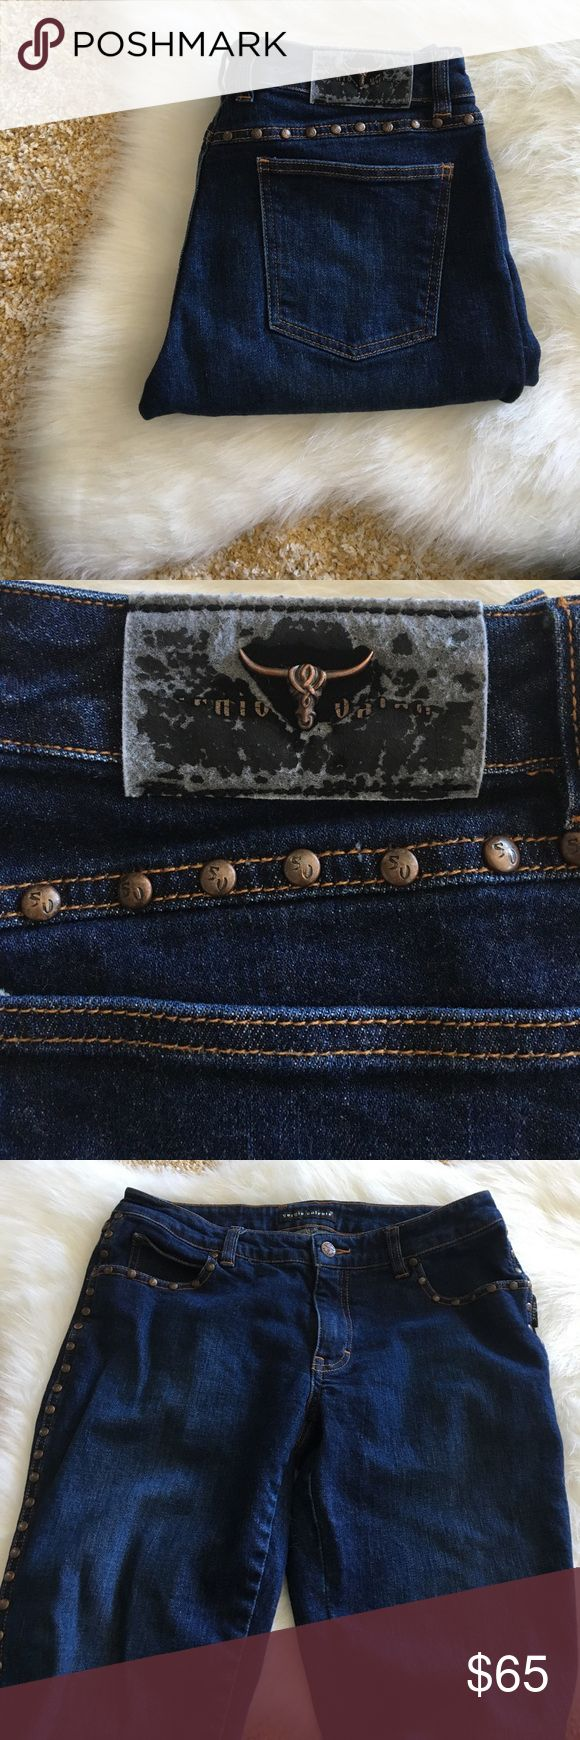 """{ Sergio Valente } stud embellished jean Sergio Valente studded Jean, front and back pockets, straight leg, measures laying flat approx 15"""" across top 31"""" inseam. Previously worn with normal wash and wear to it in great condition. Sergio Valente Jeans Straight Leg"""